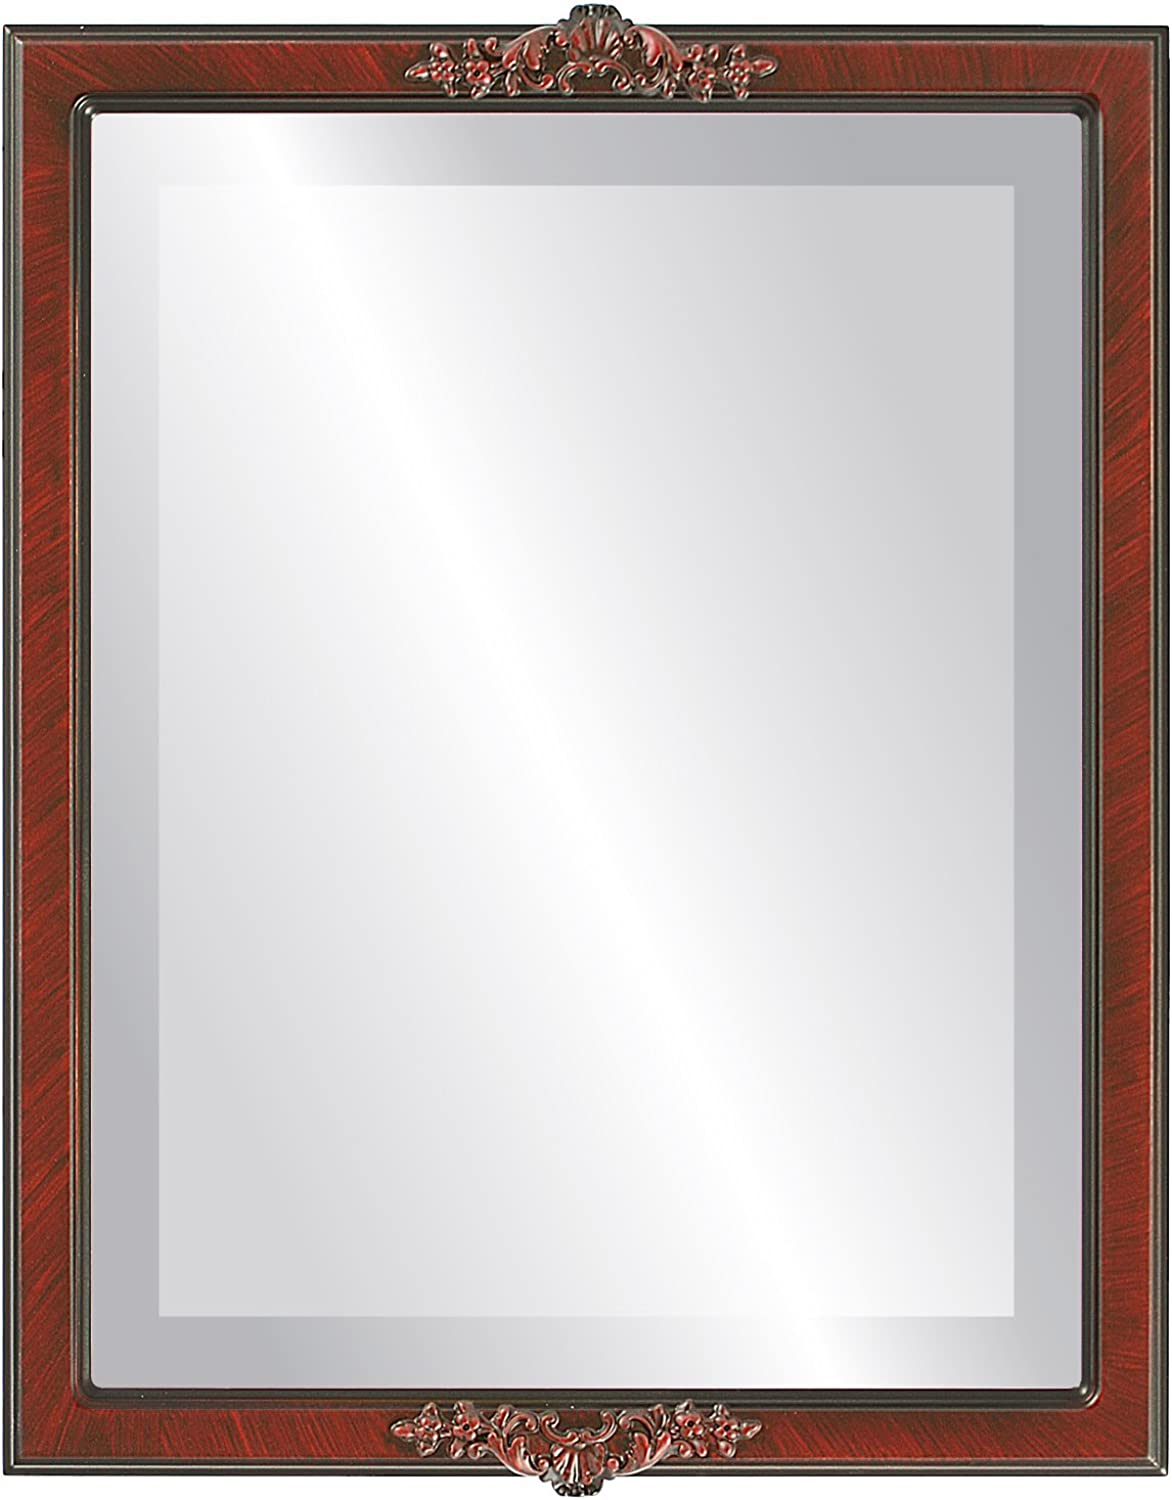 Rectangle Beveled Wall Mirror for Home Decor - Athena Style - Vintage Cherry - 14x18 Outside Dimensions